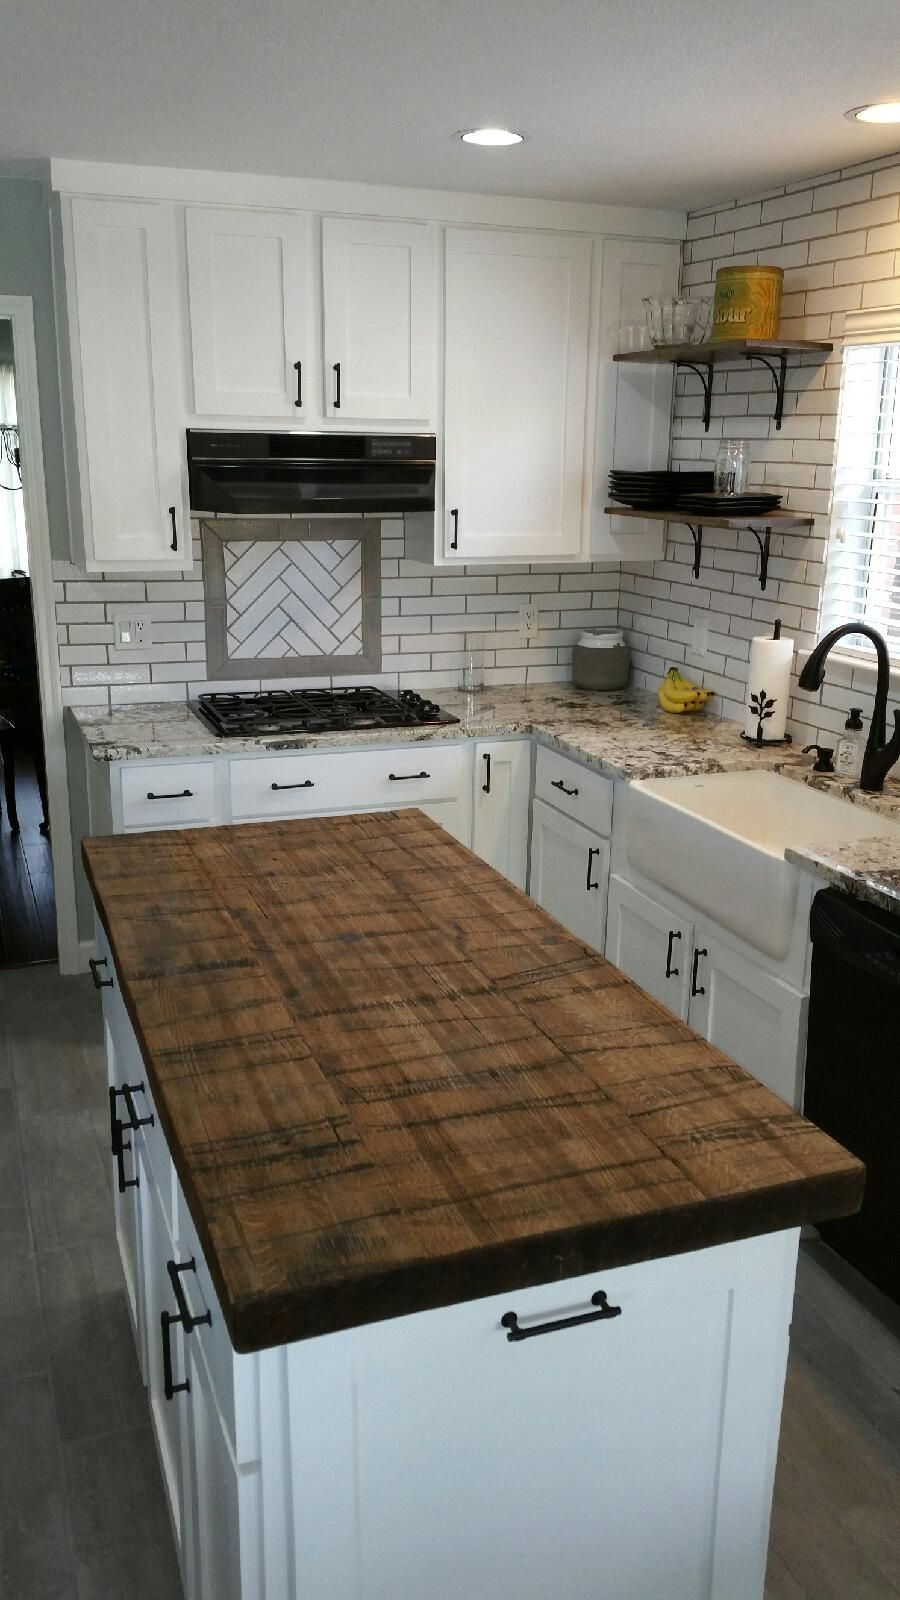 Reclaimed Wood Planks By Reclaimed Designworks Used For Kitchen Island Wood Countertops Kitchen Island Kitchen Remodel Kitchen Renovation